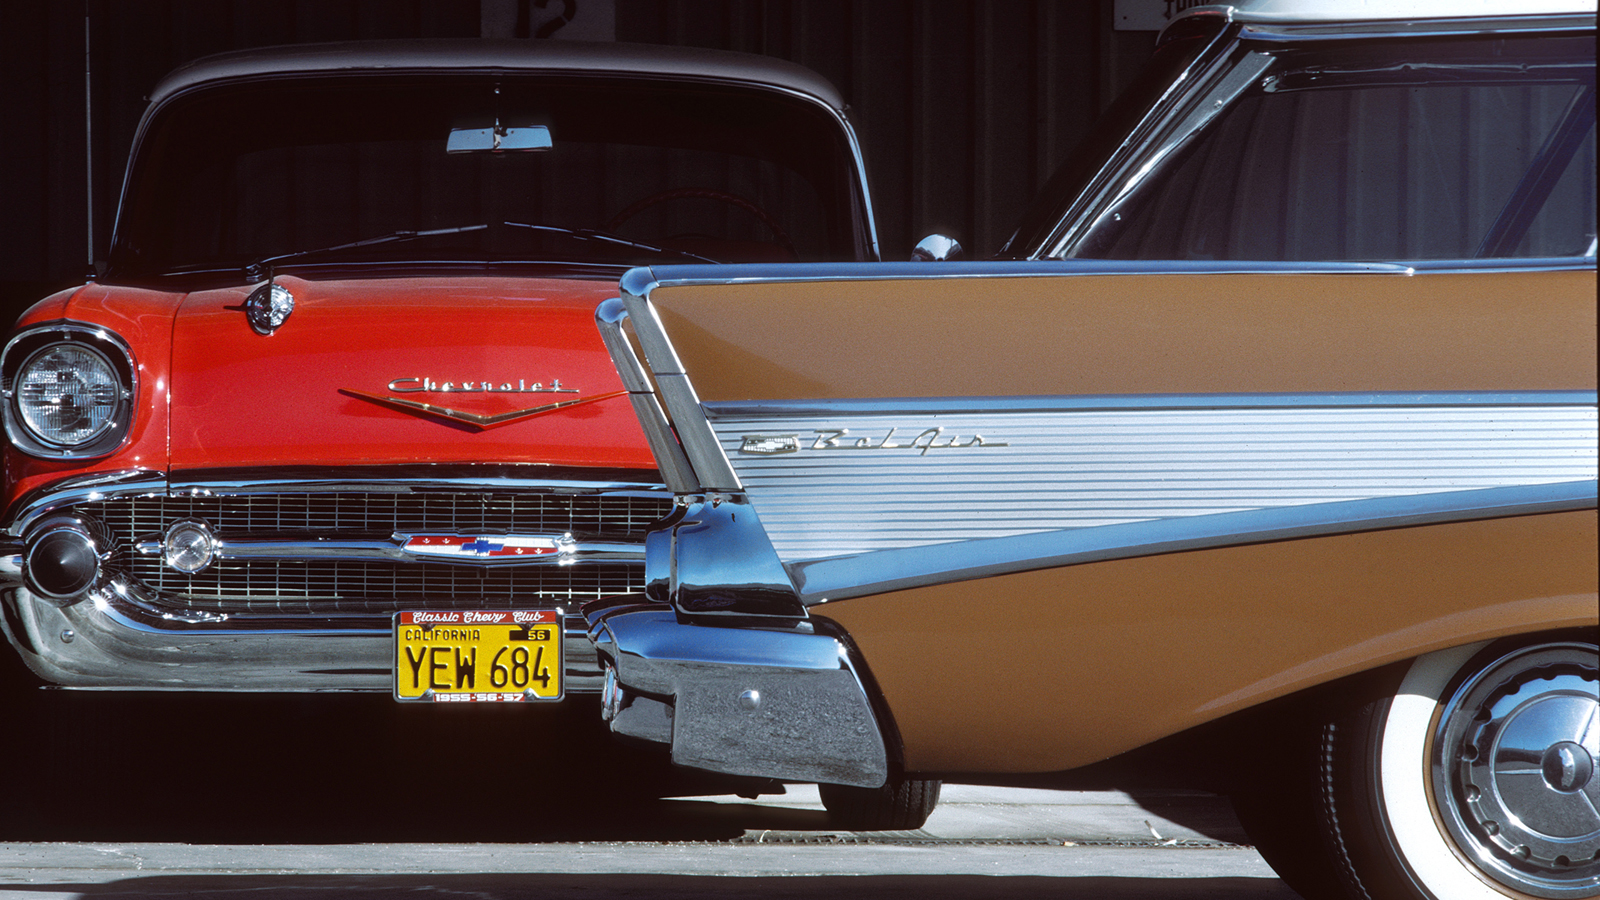 your ridiculously vintage '57 chevy wallpaper is here